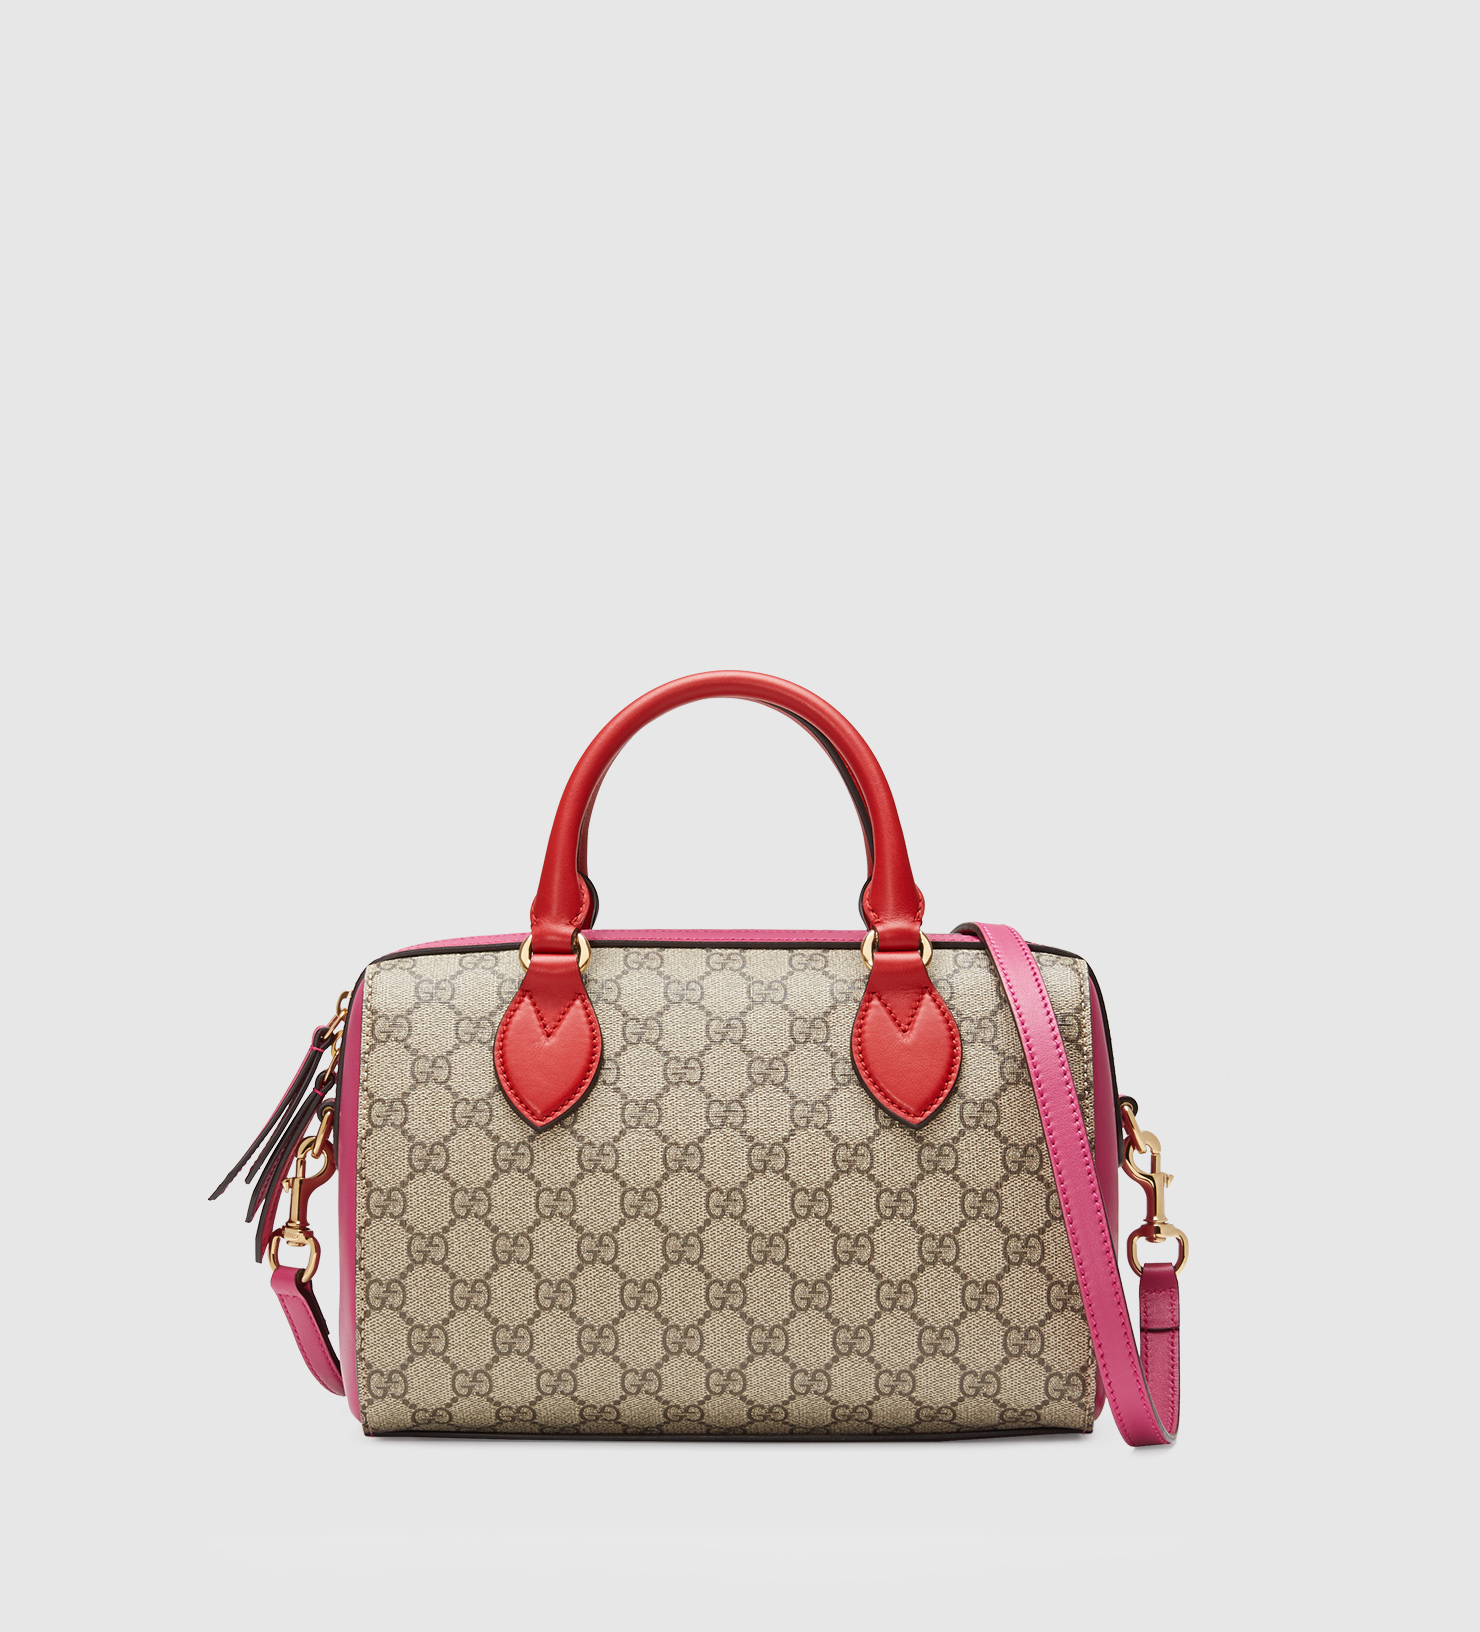 e8b36f37ca25 Gucci Gg Supreme Top Handle Bag - Lyst